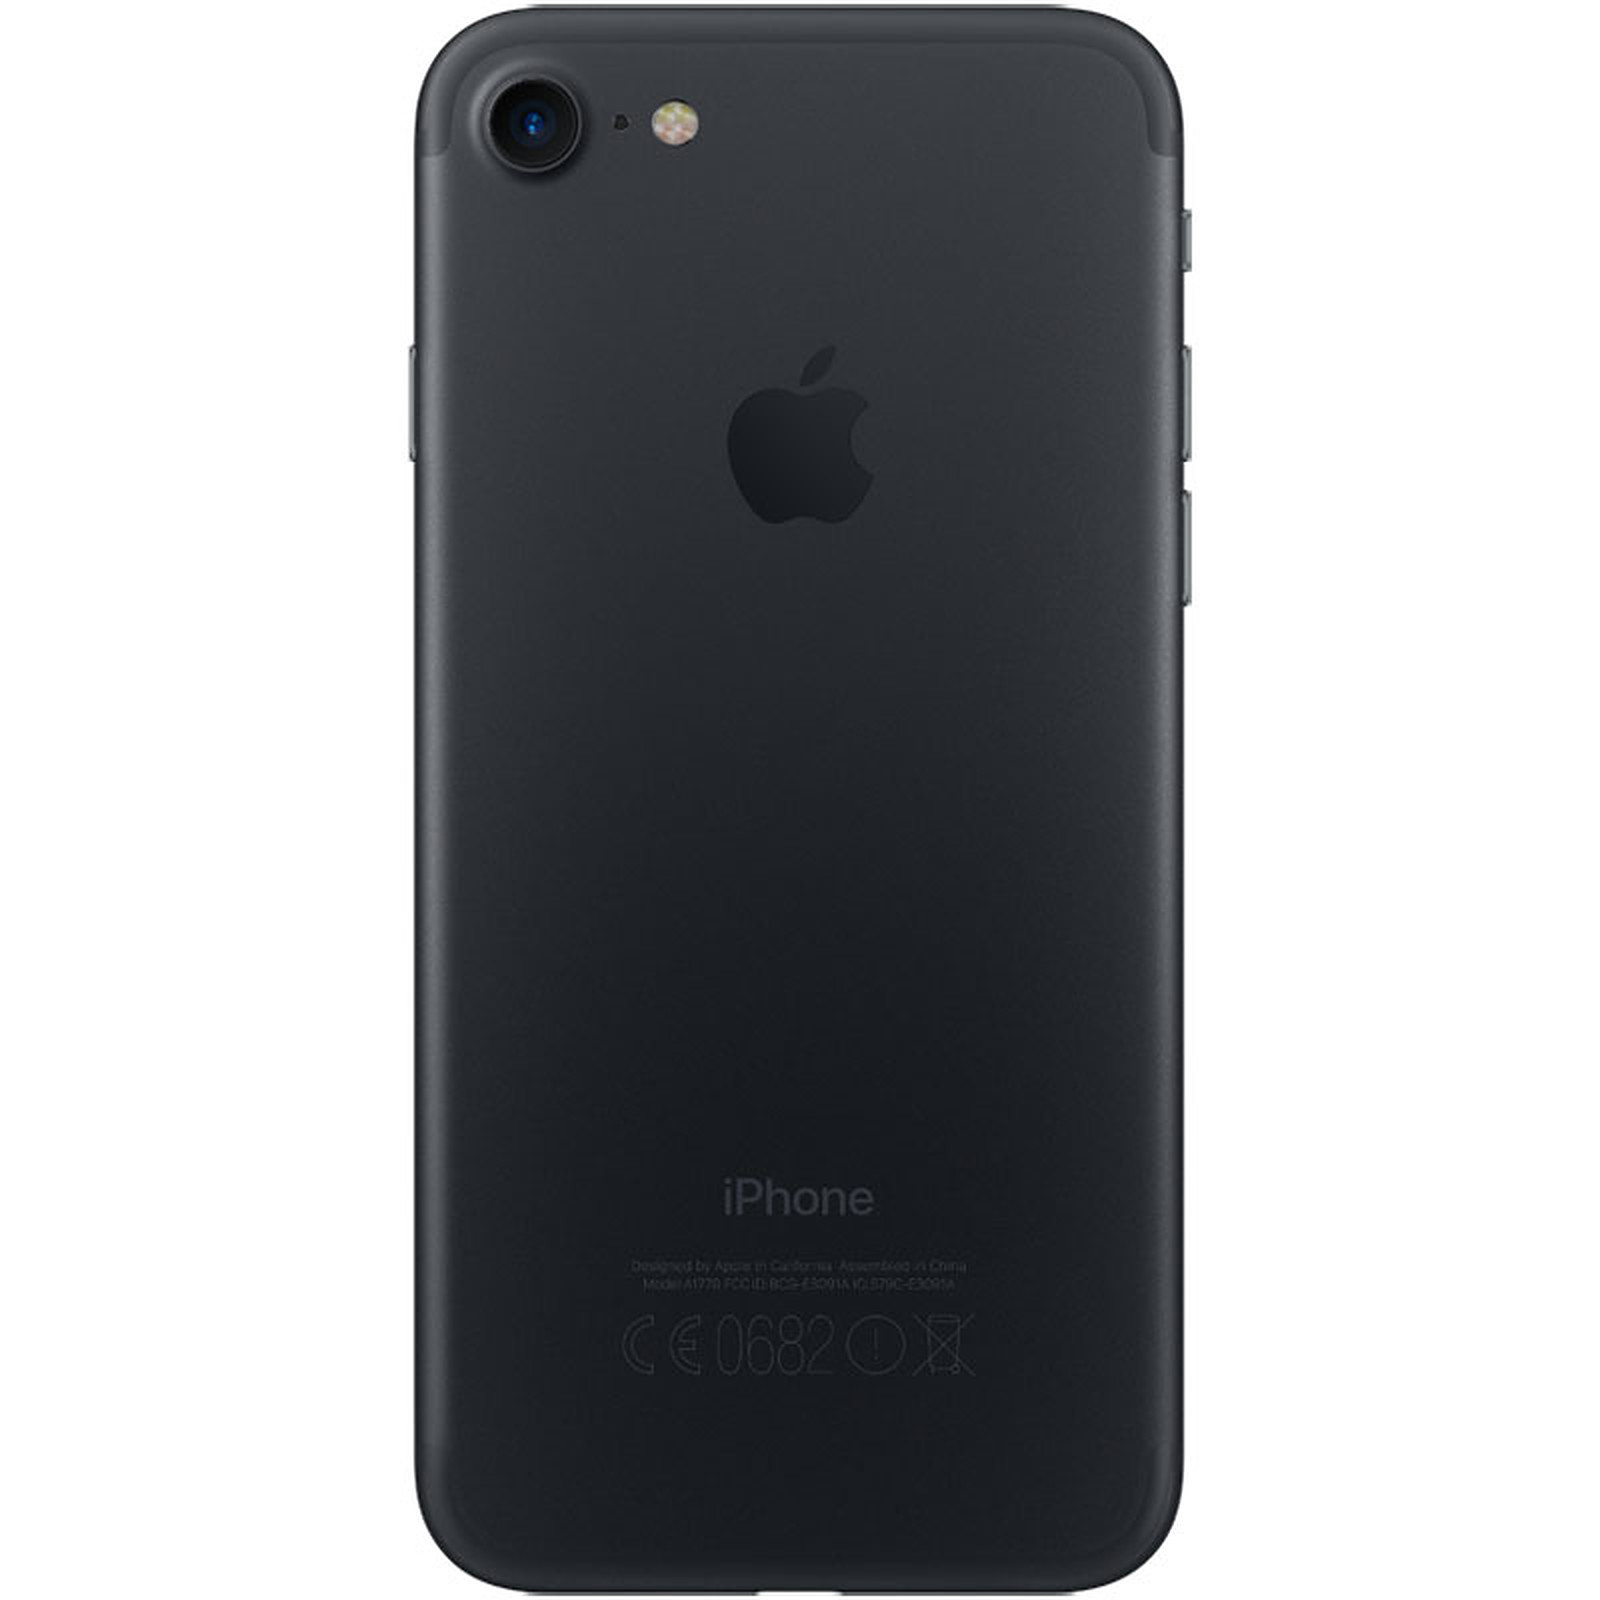 Apple iPhone 7 32 Go Noir - Mobile   smartphone Apple sur LDLC.com dabf7f2f03e2